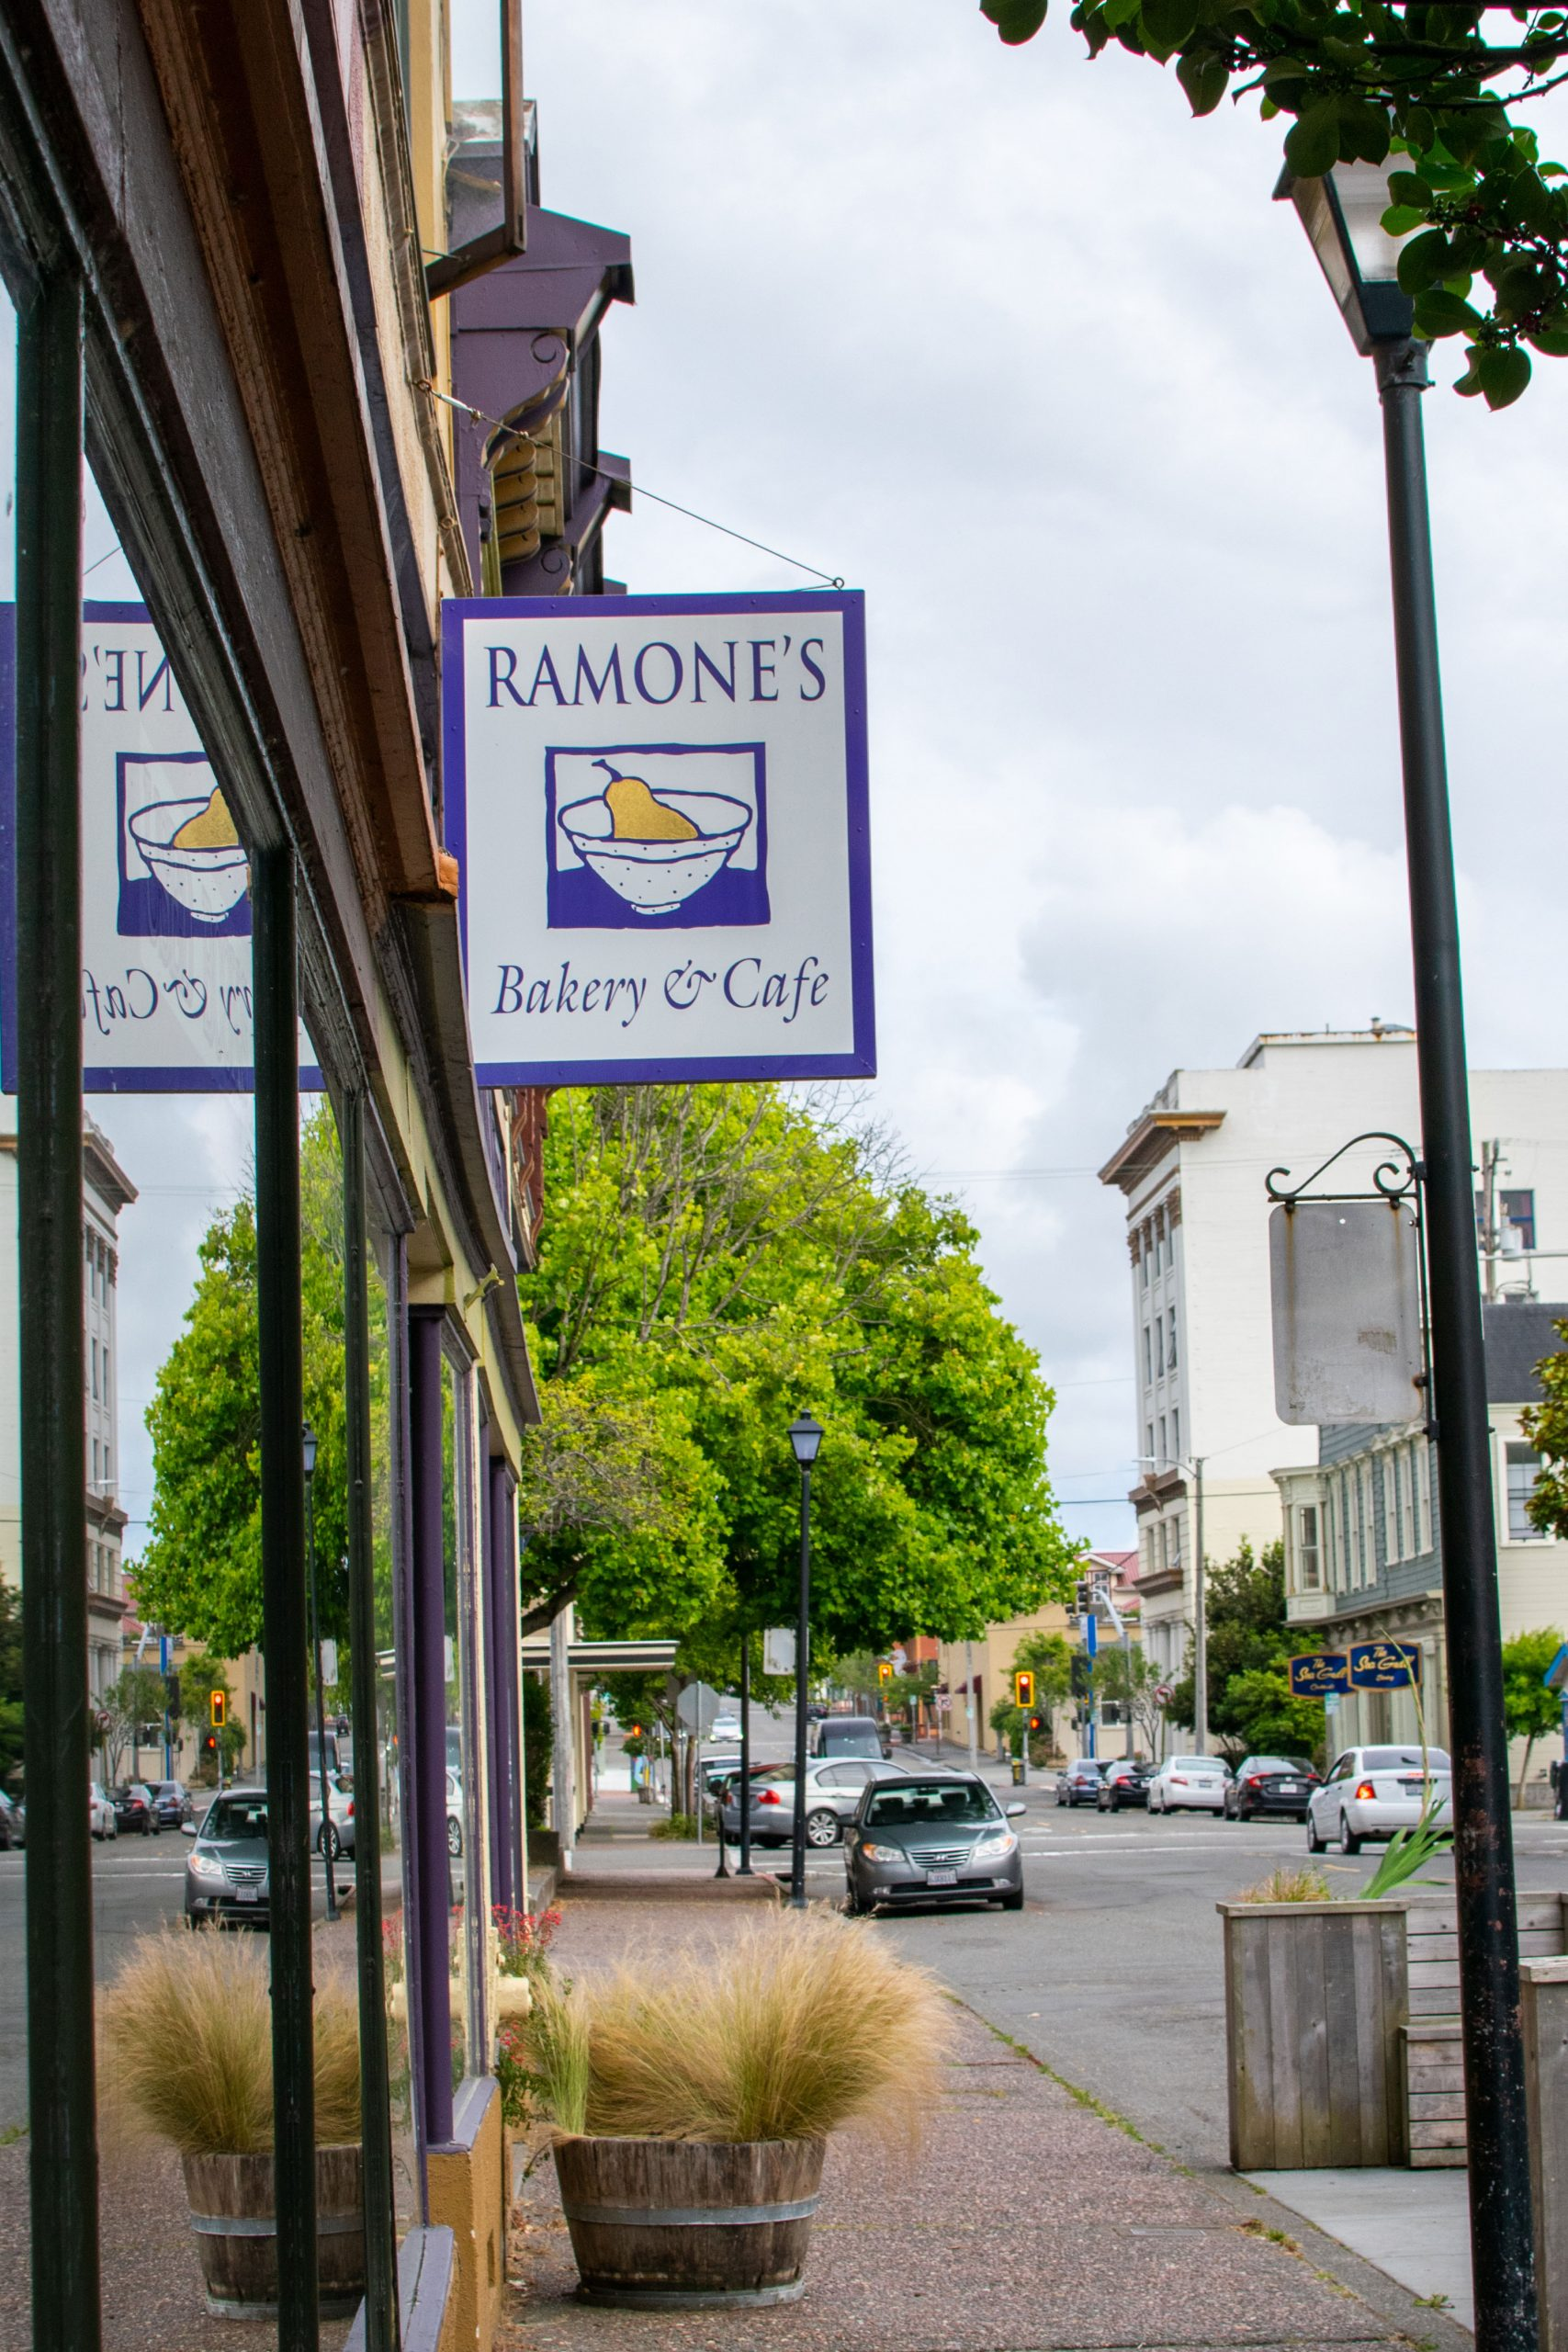 Ramone's in Old Town